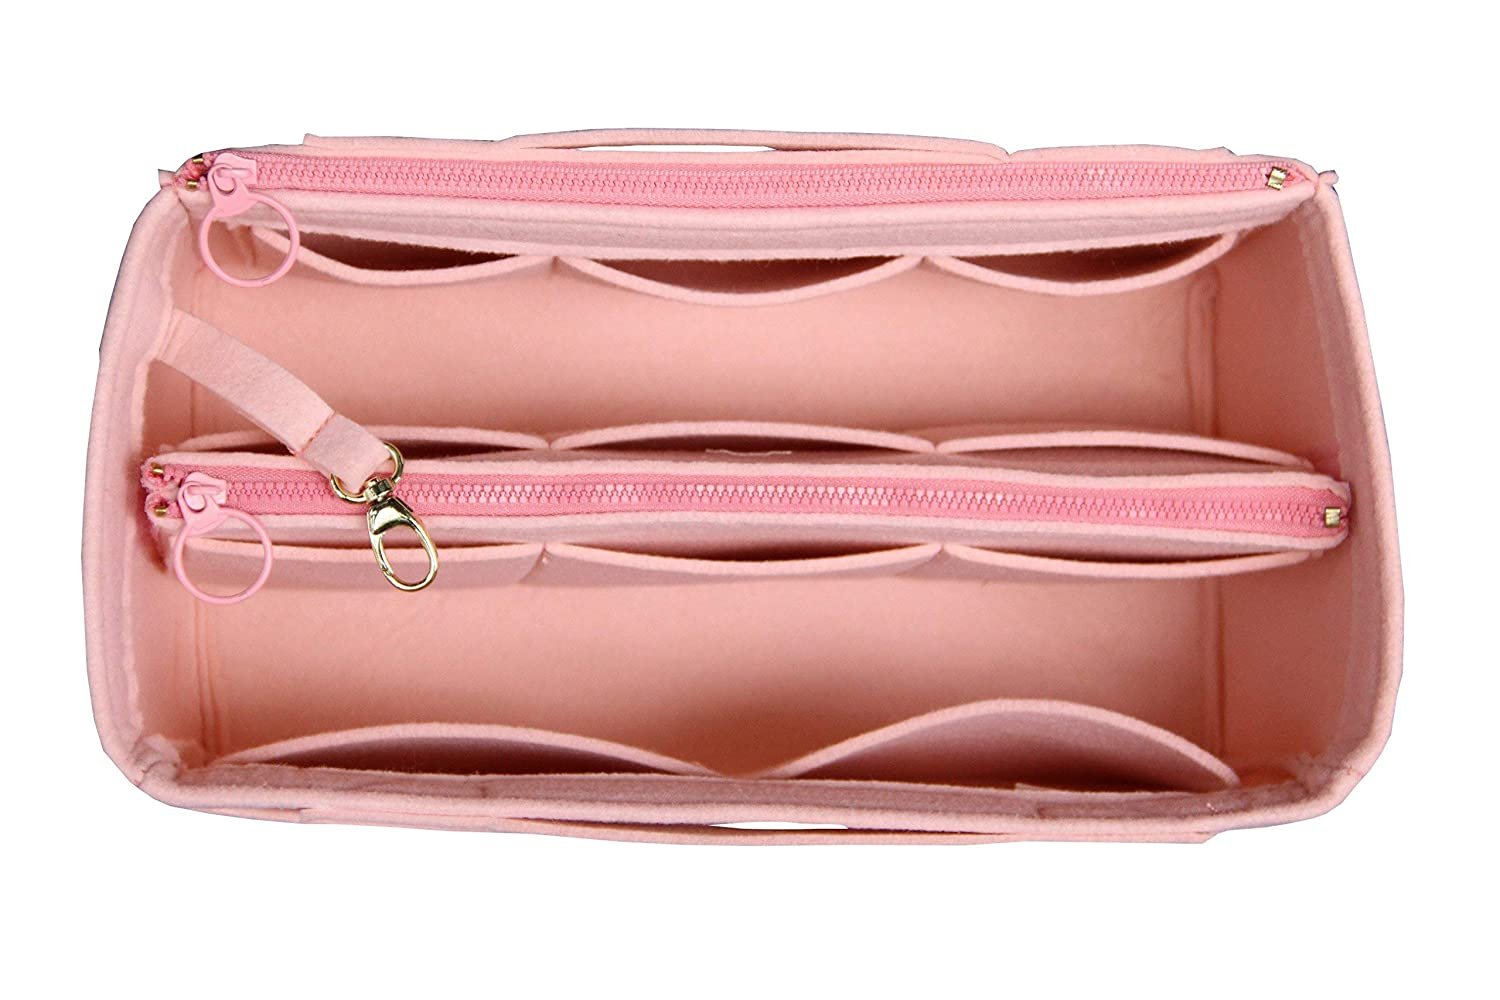 [Fits Neverfull MM/Speedy 30, Rose Ballerine] Felt Organizer (Invisible Handles, Zip Pocket, Key Chain Hook, Detachable Compartments), Bag in Bag, Wool Purse Insert, Customized Tote Organize